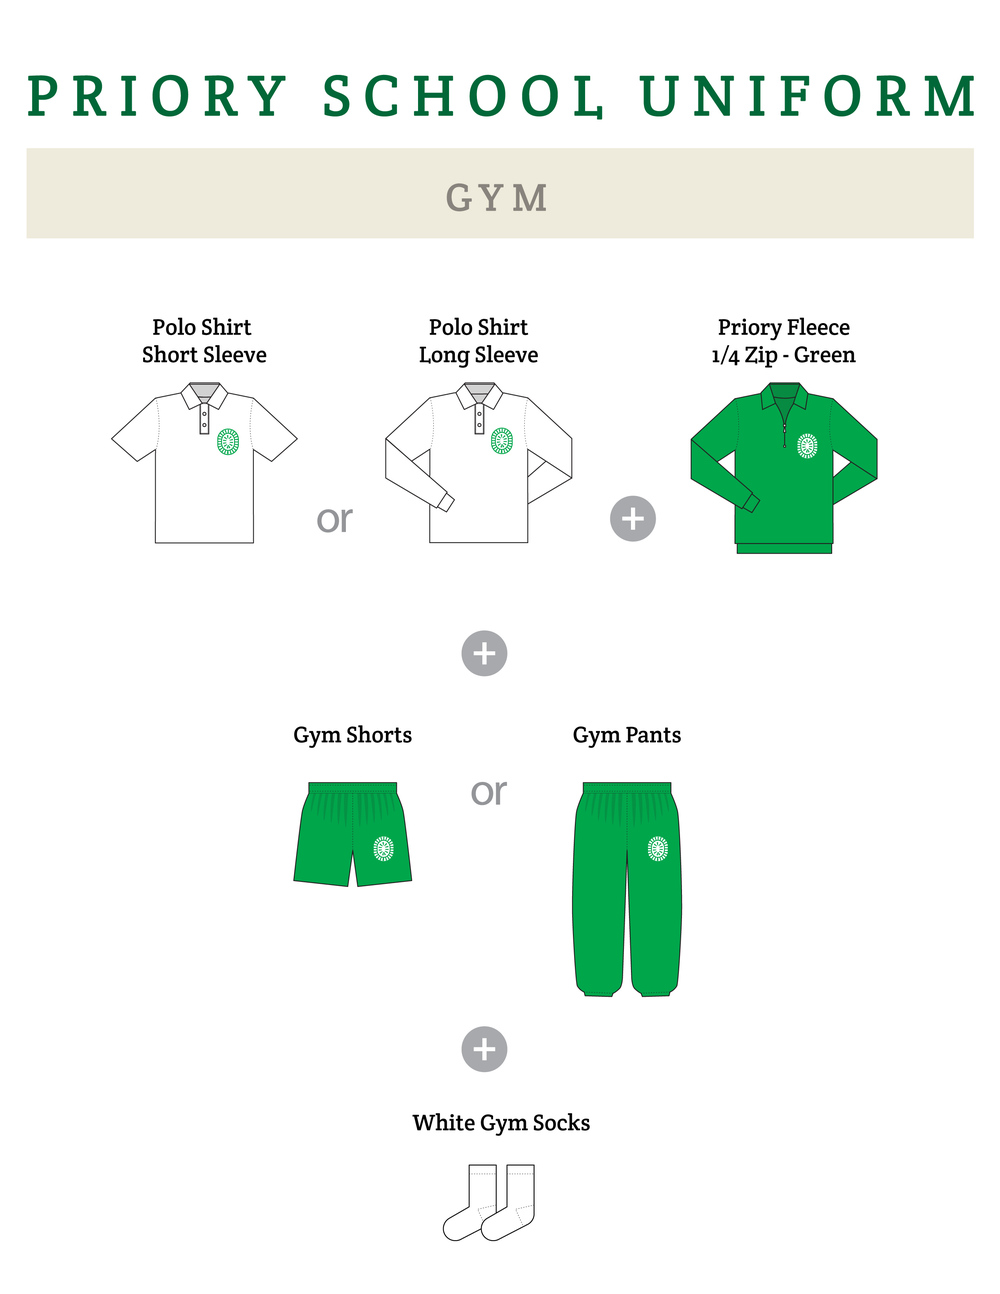 PrioryUniform_letterSize-GYM.jpg